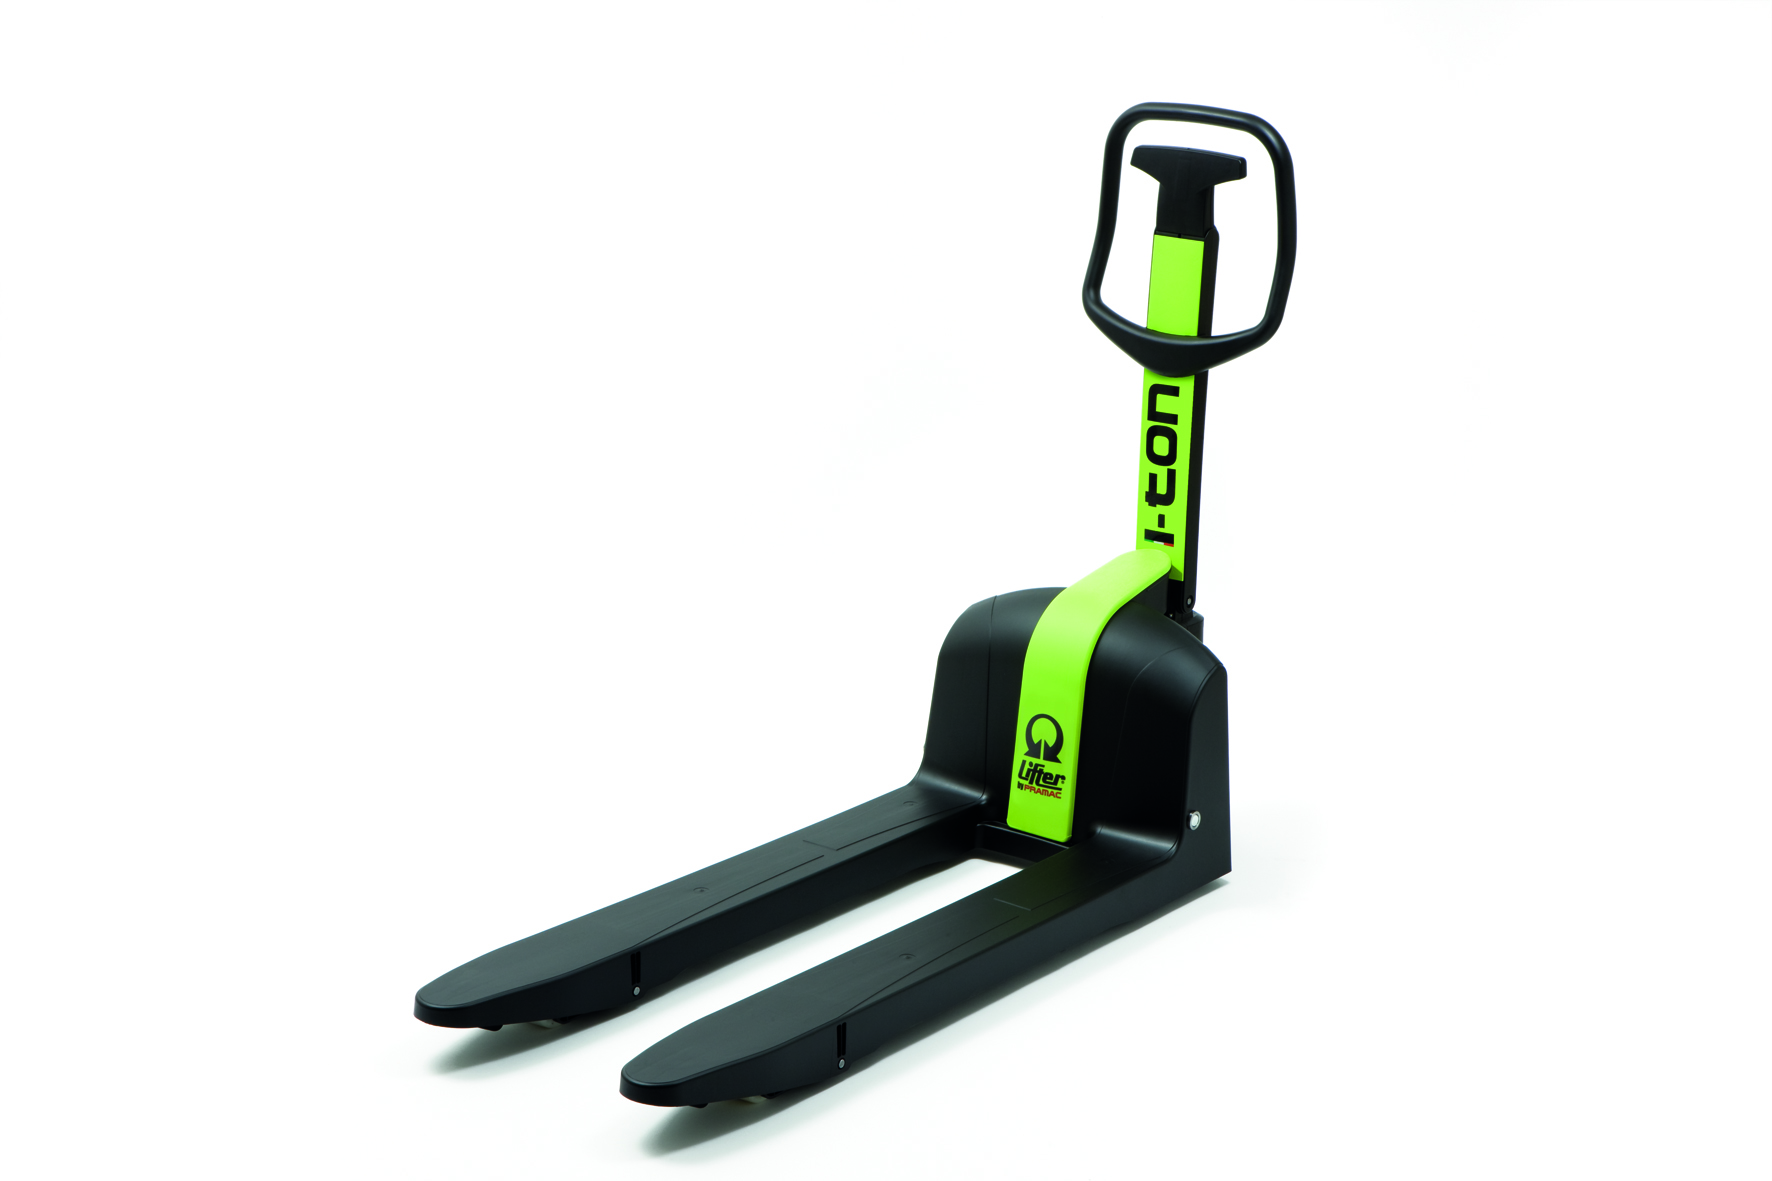 i-Ton Pallet Truck made of Ultra Light and Resistant Plastic